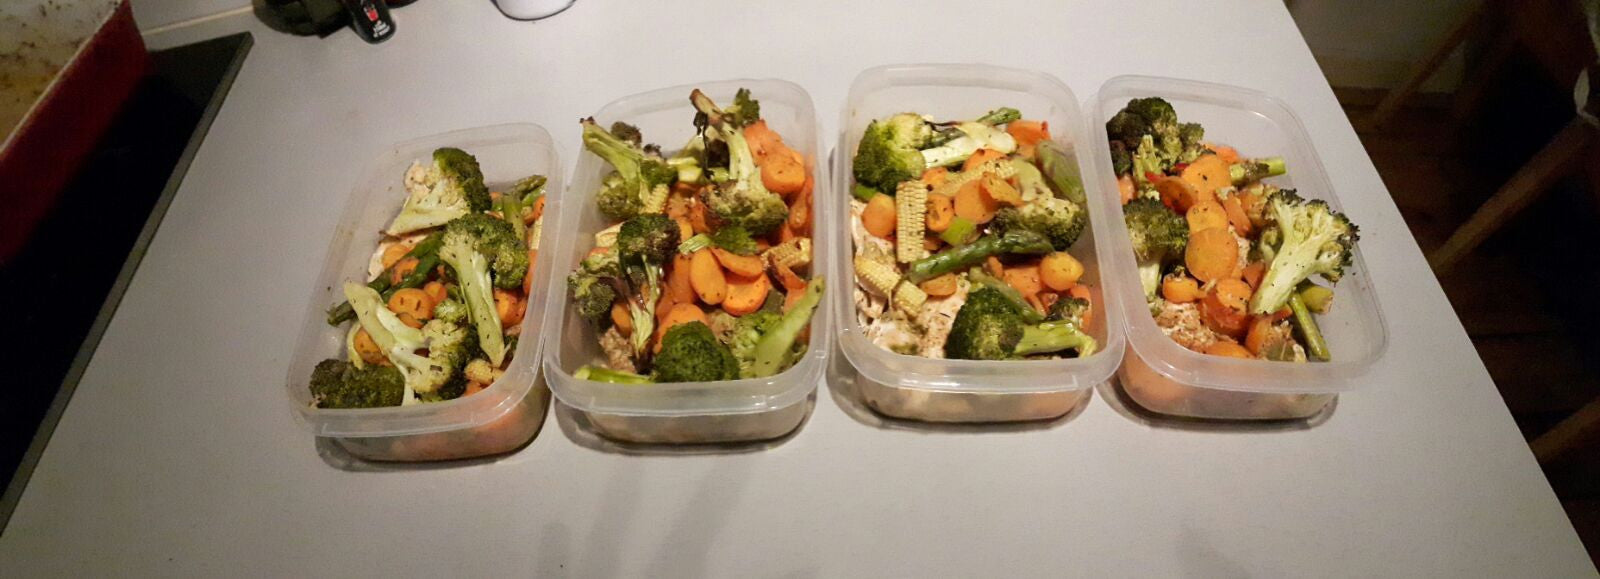 Meal prep done easy for the lazy (like me!)